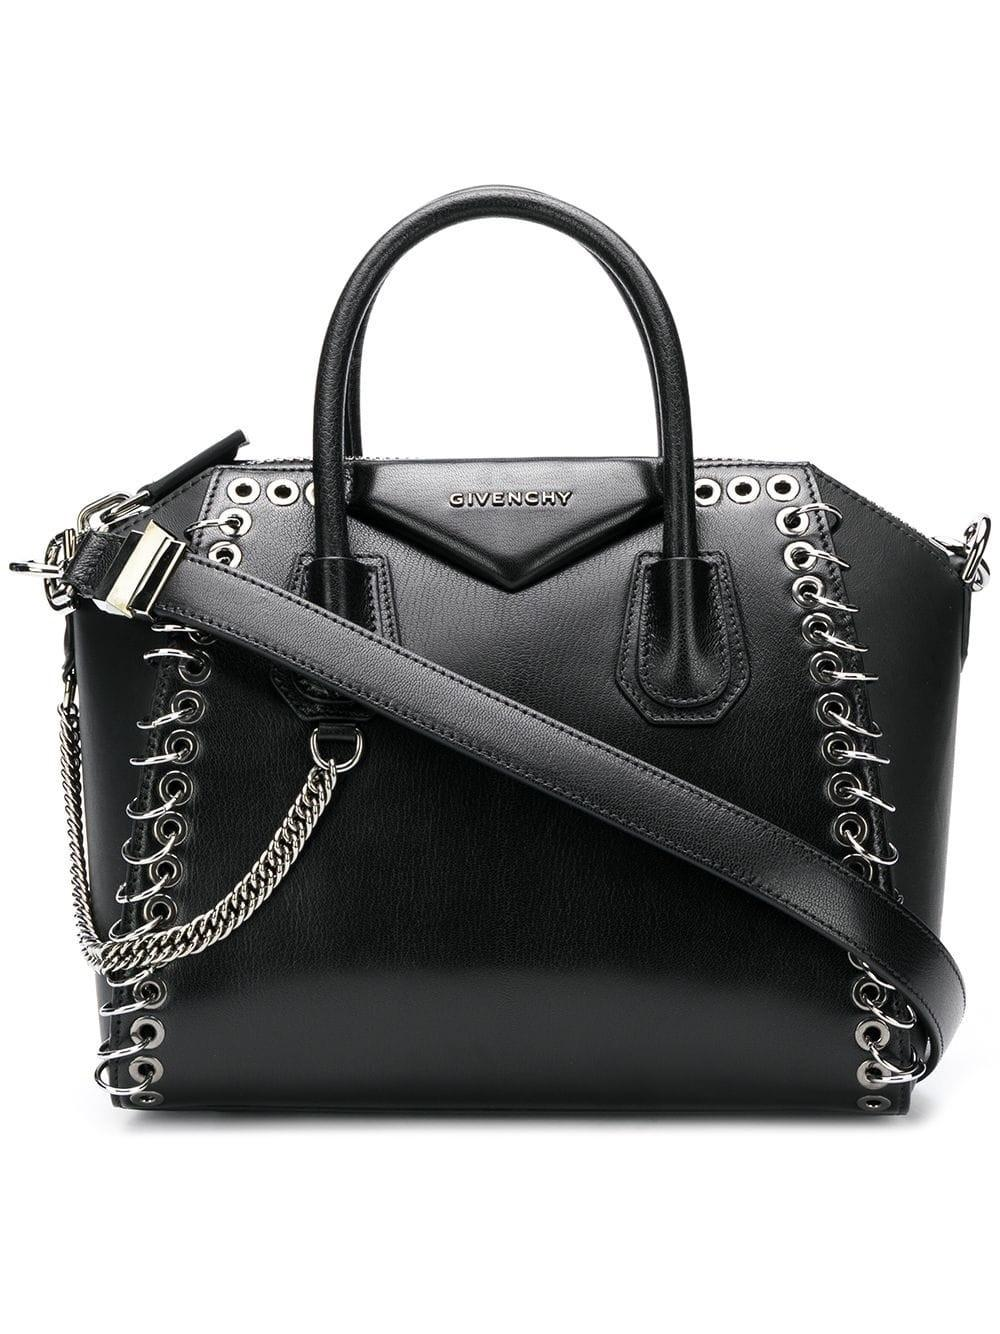 Givenchy Small Antigona Eyelet Tote